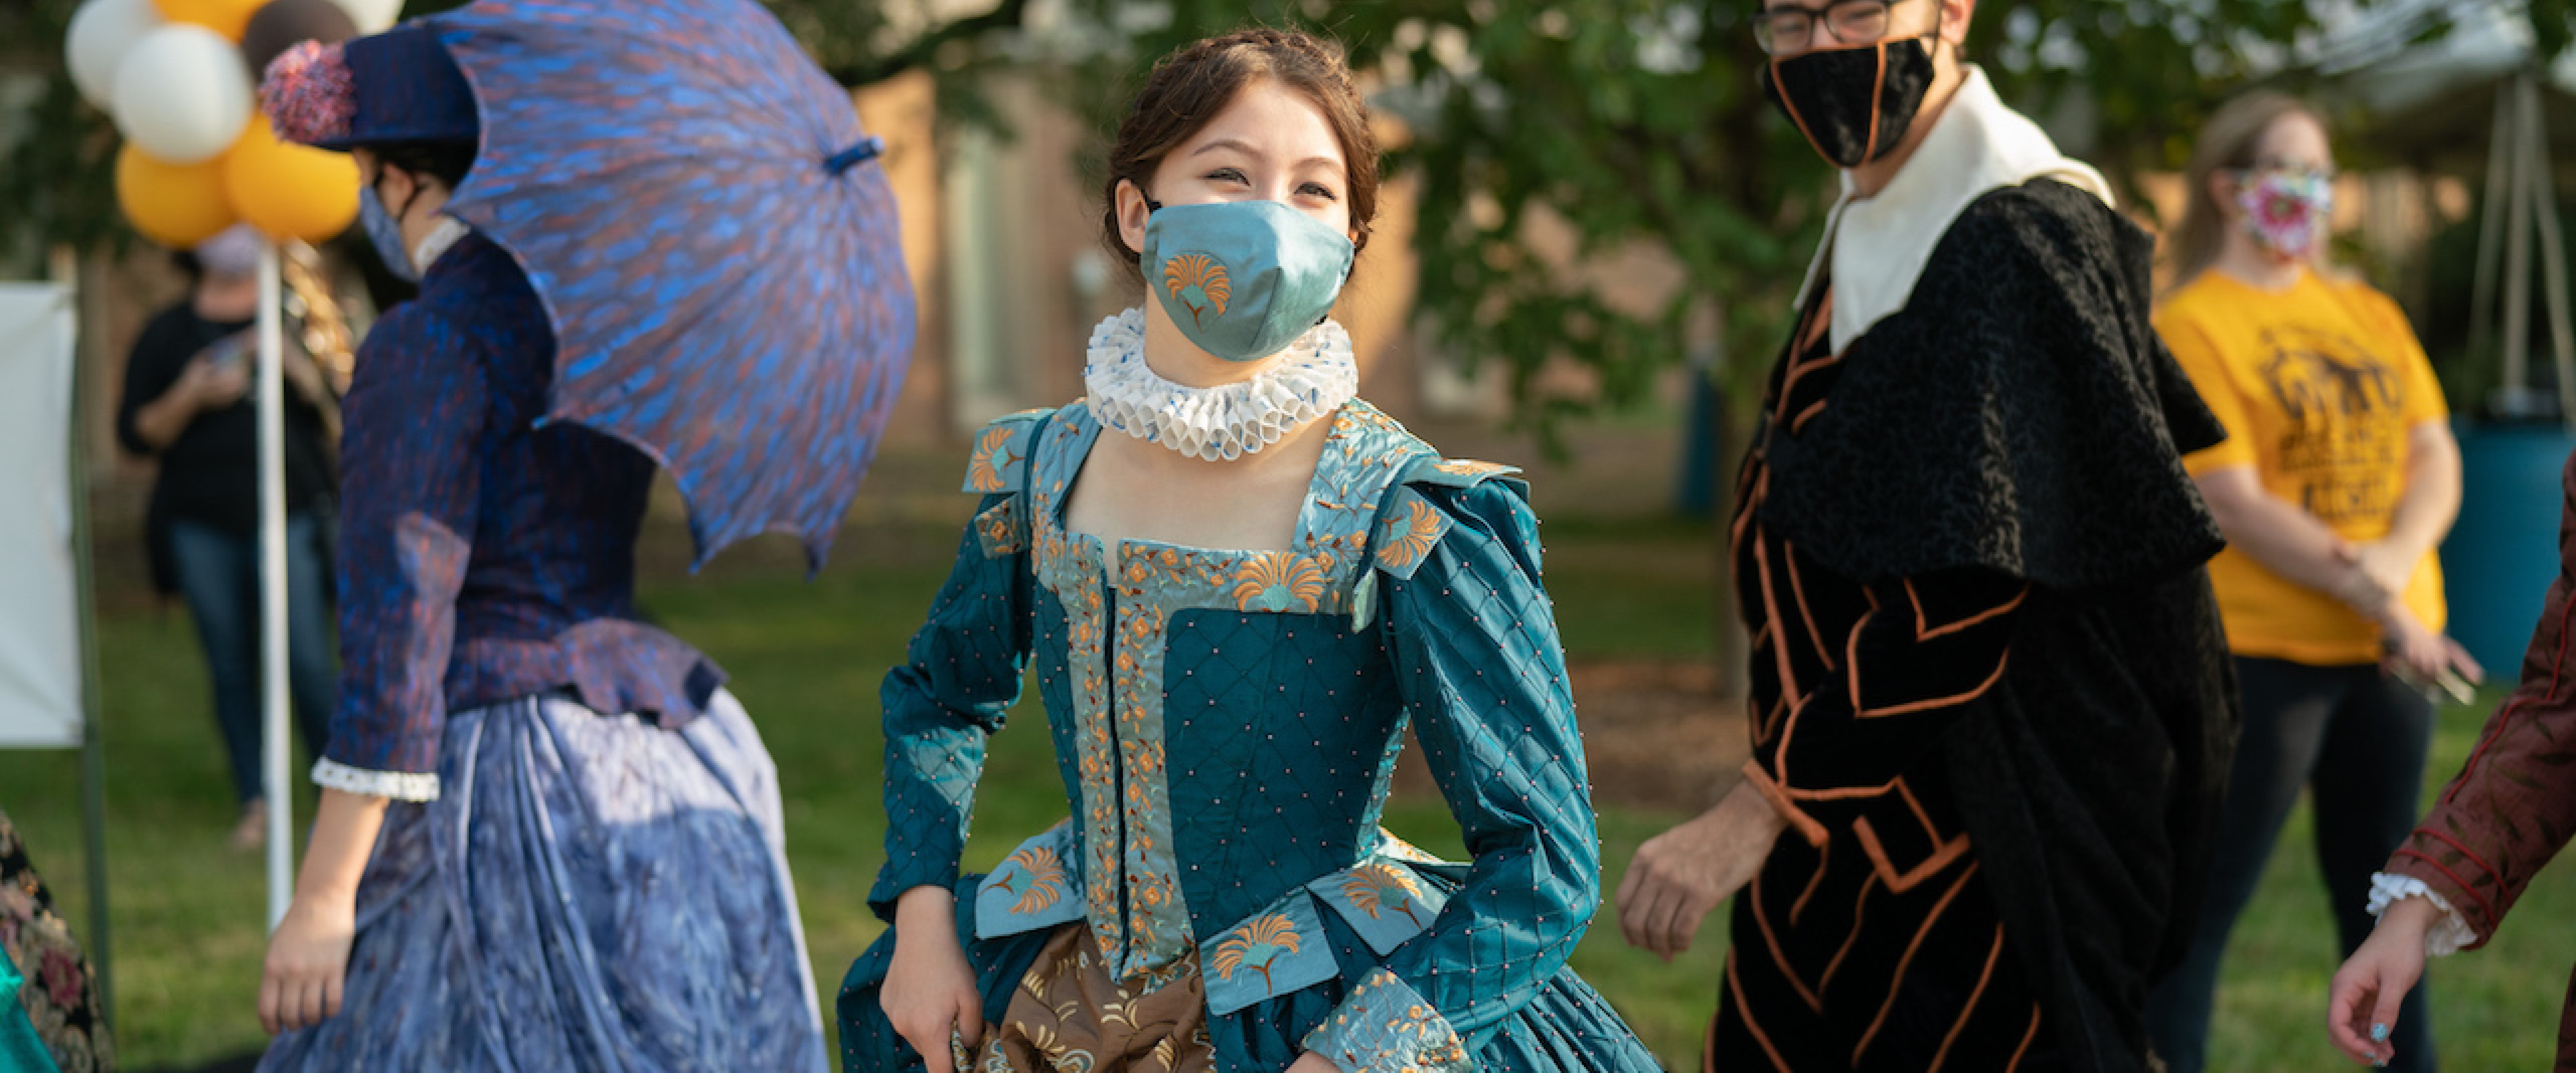 Young woman in teal, Shakespearian dress, wearing a mask while walking outdoors.